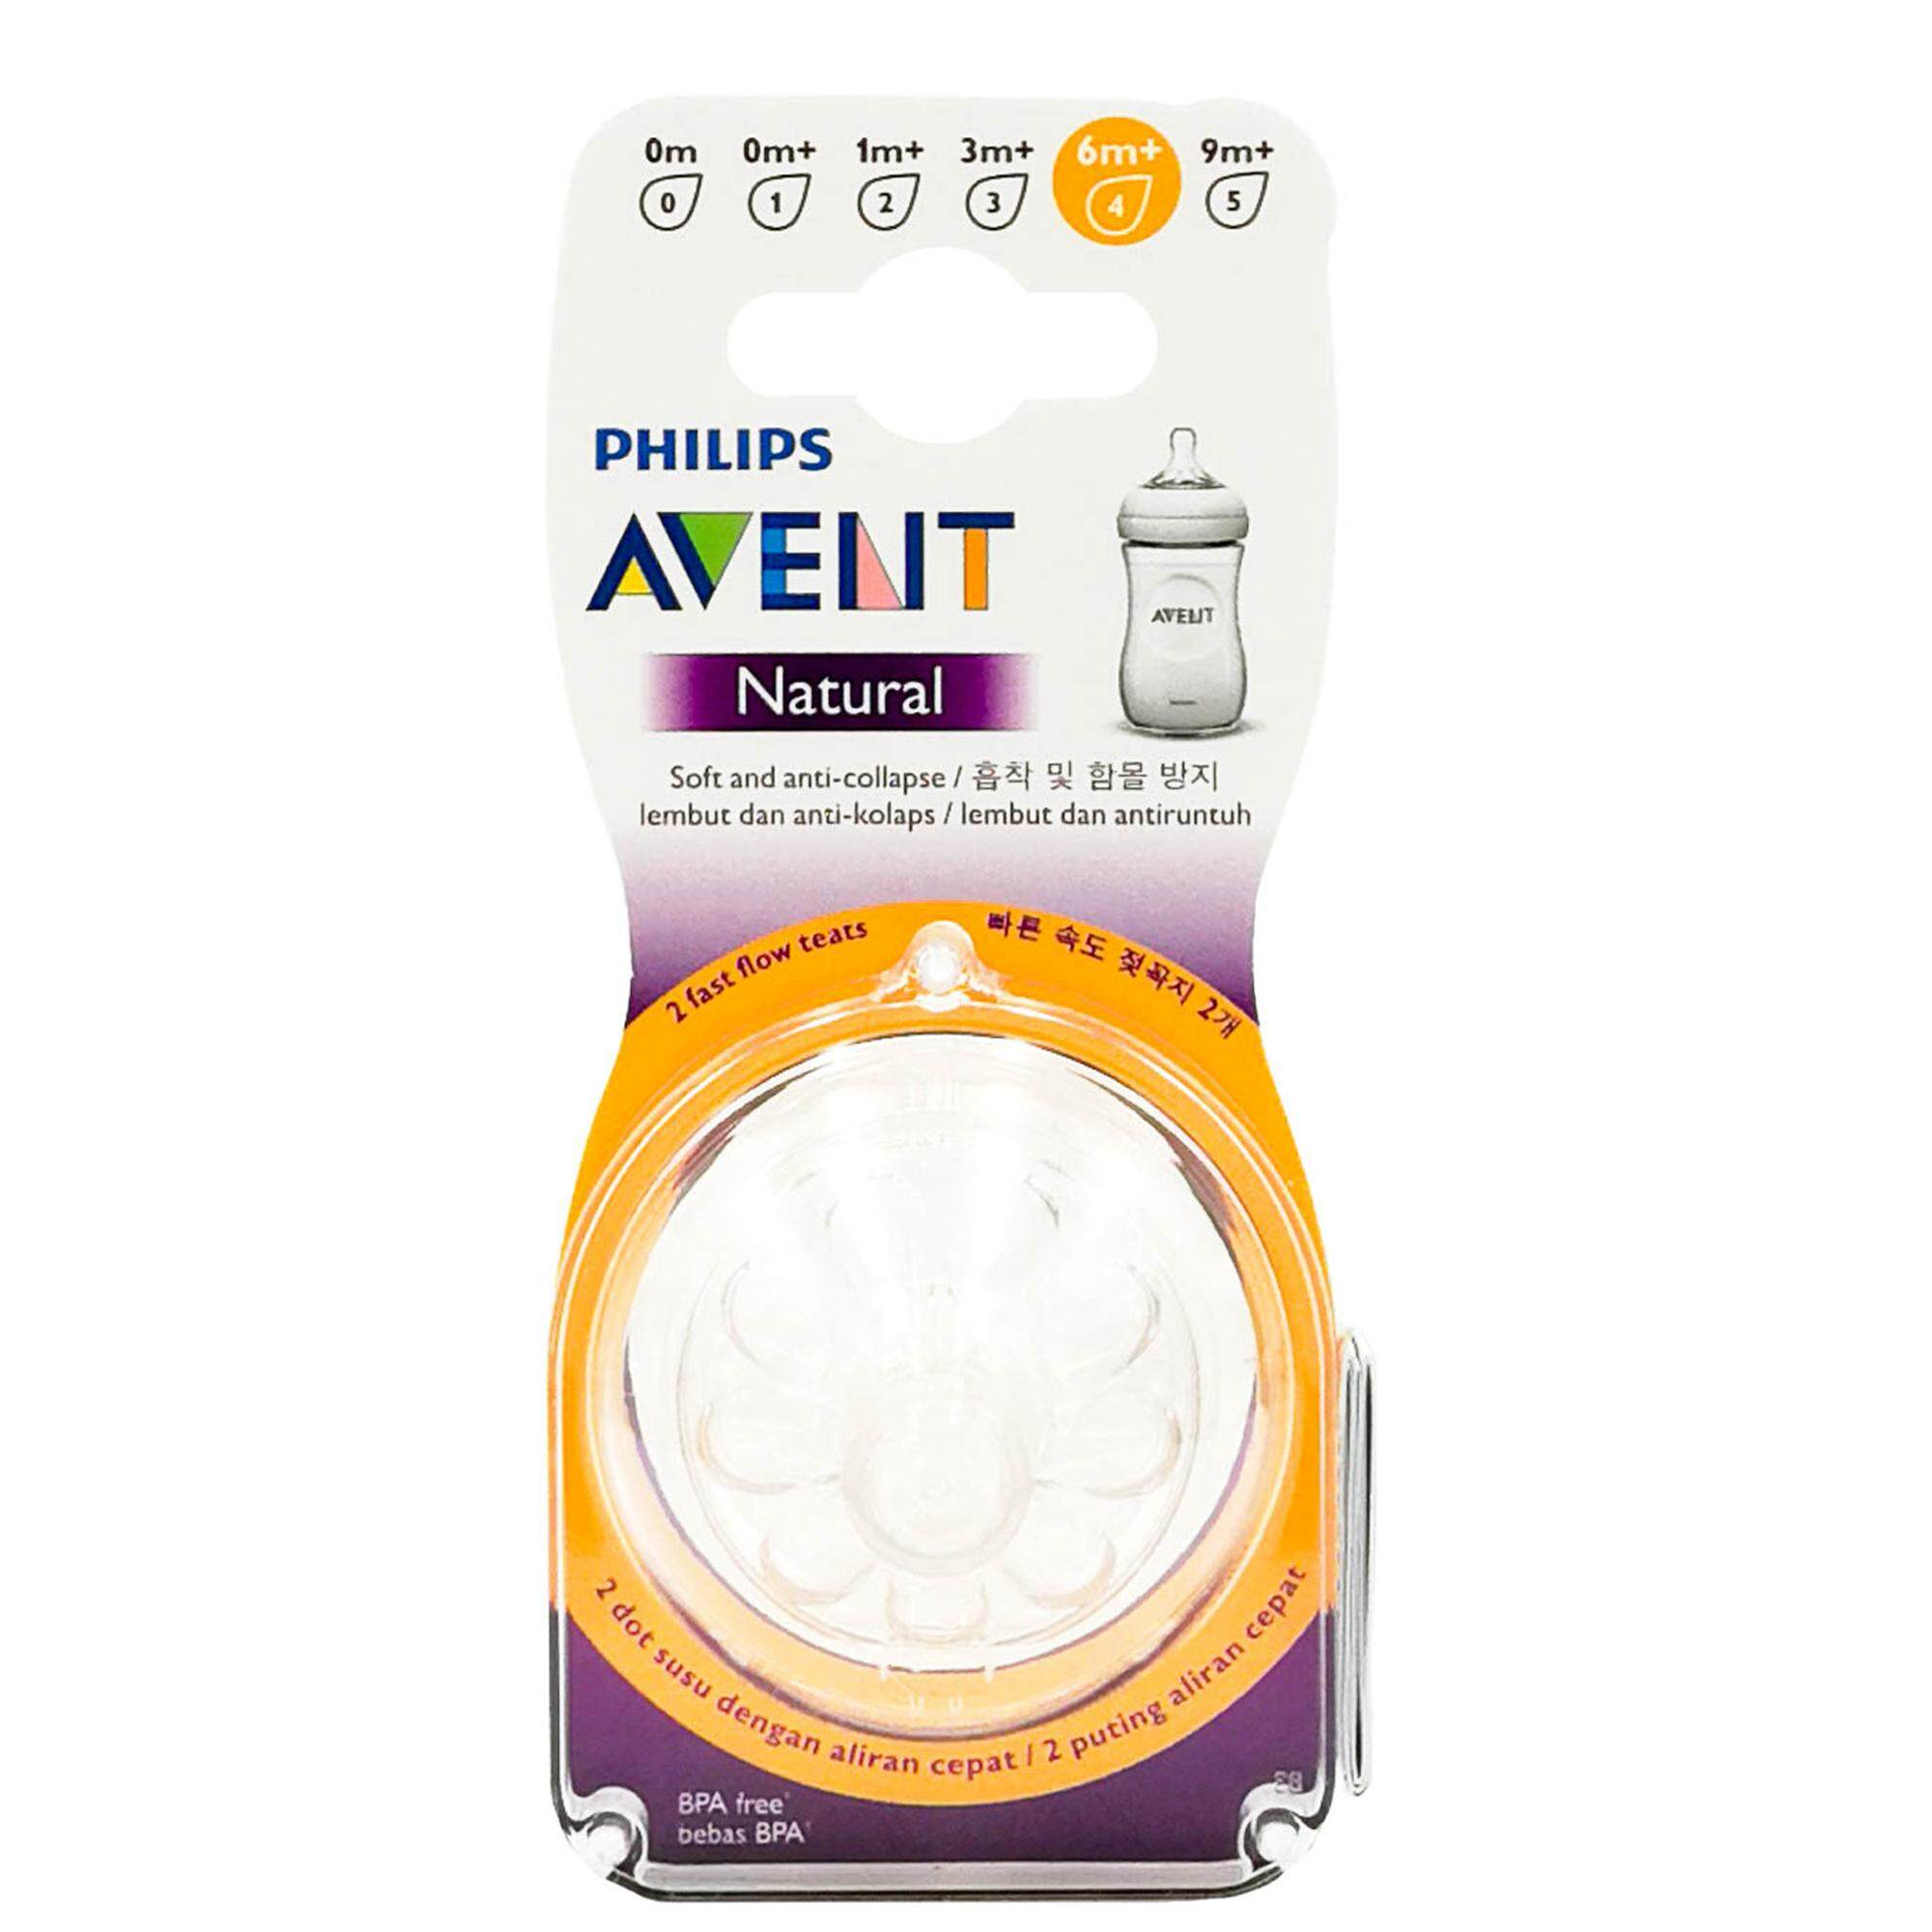 Avent Natural Fast Flow Teat 6m+ (4 Holes) - 2pcs